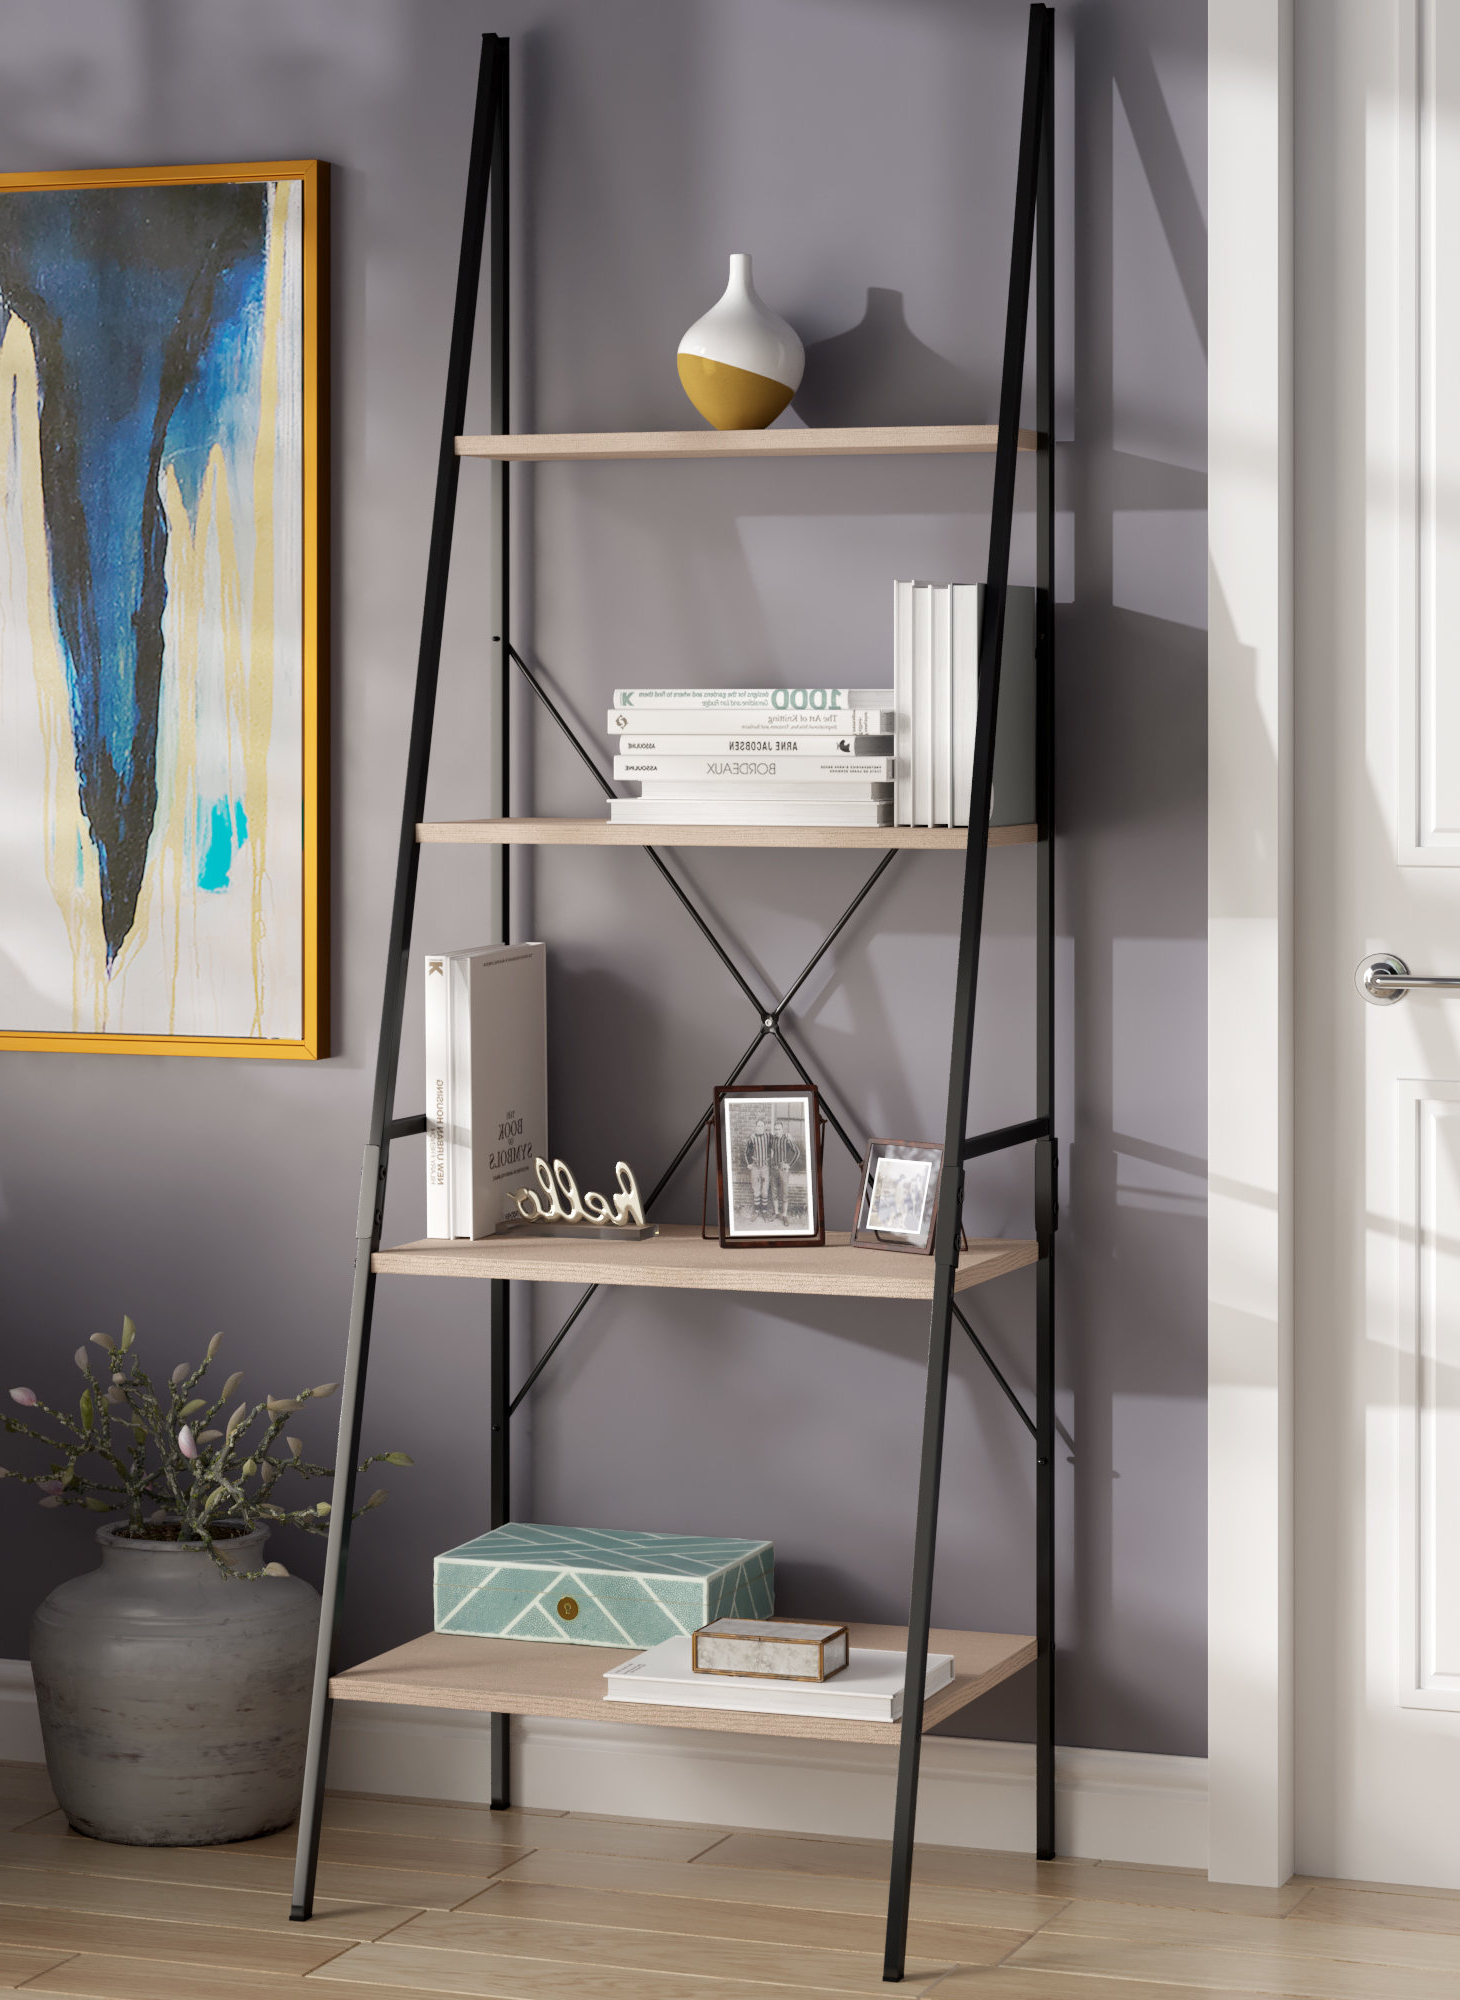 Rech 4 Tier Etagere Bookcases Within 2020 Rech 4 Tier Etagere Bookcase (View 16 of 20)